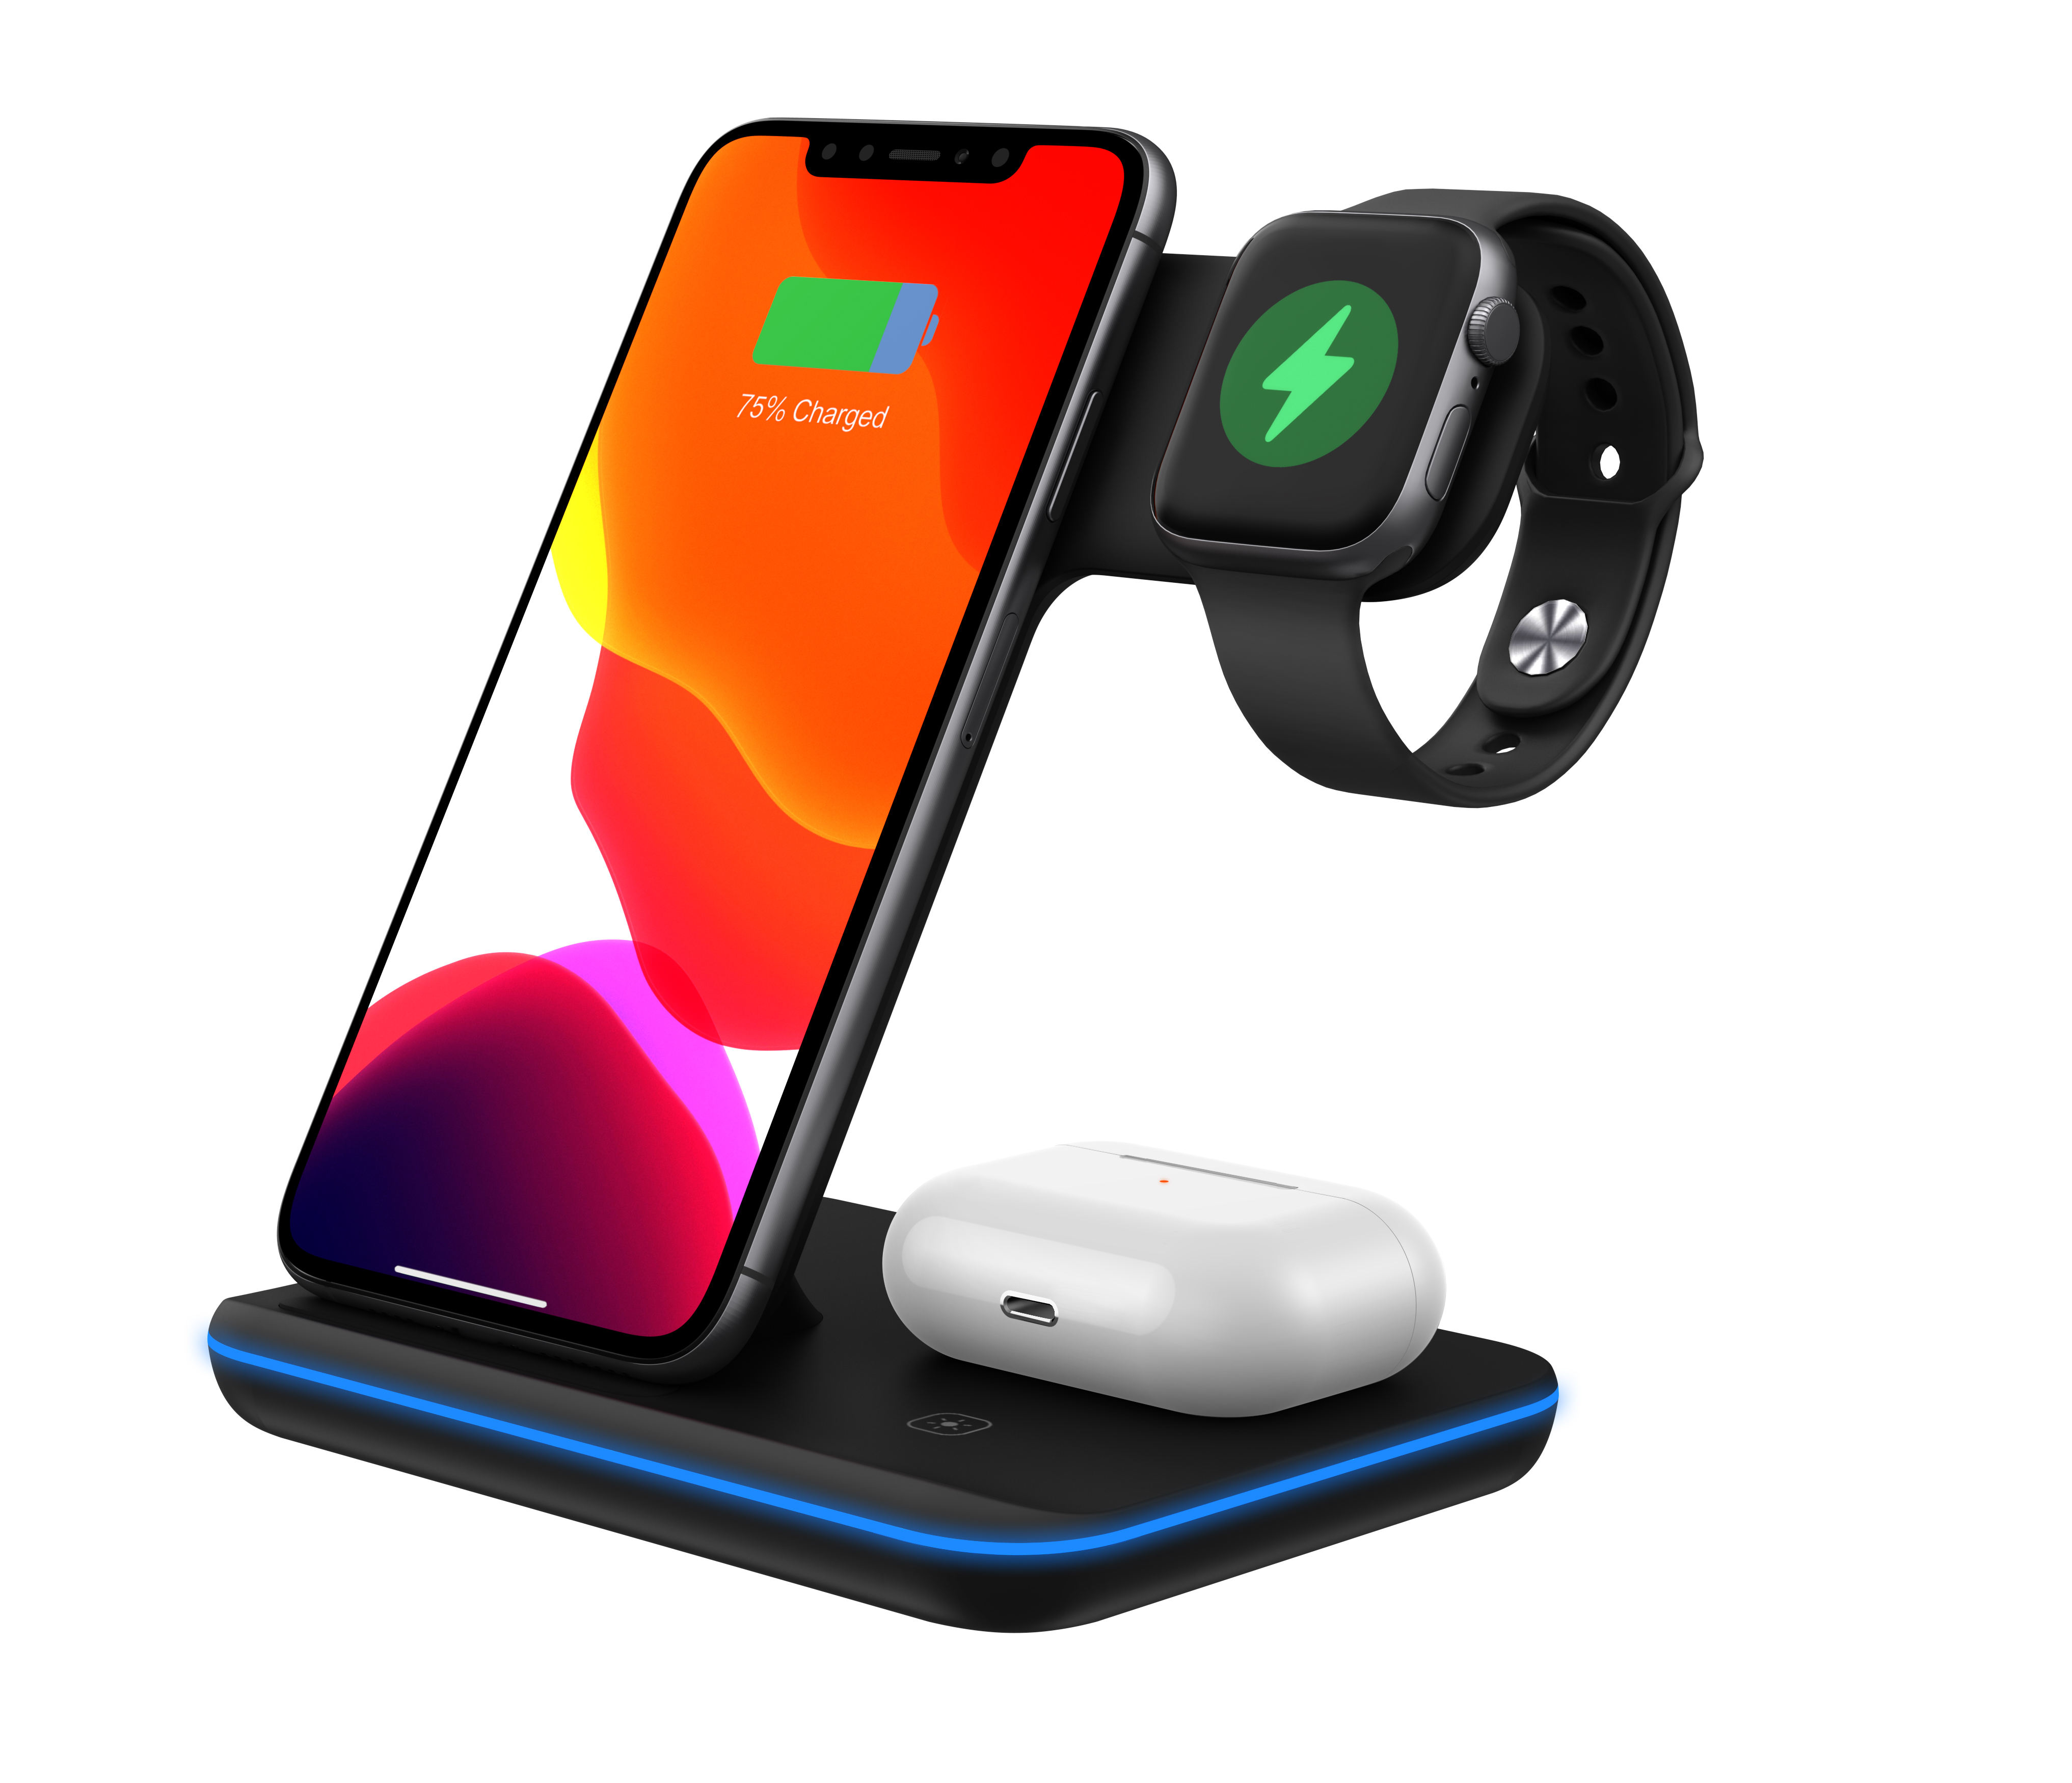 15w/10w/7.5w/5w qi wireless charger 3 in 1 for mobile phones